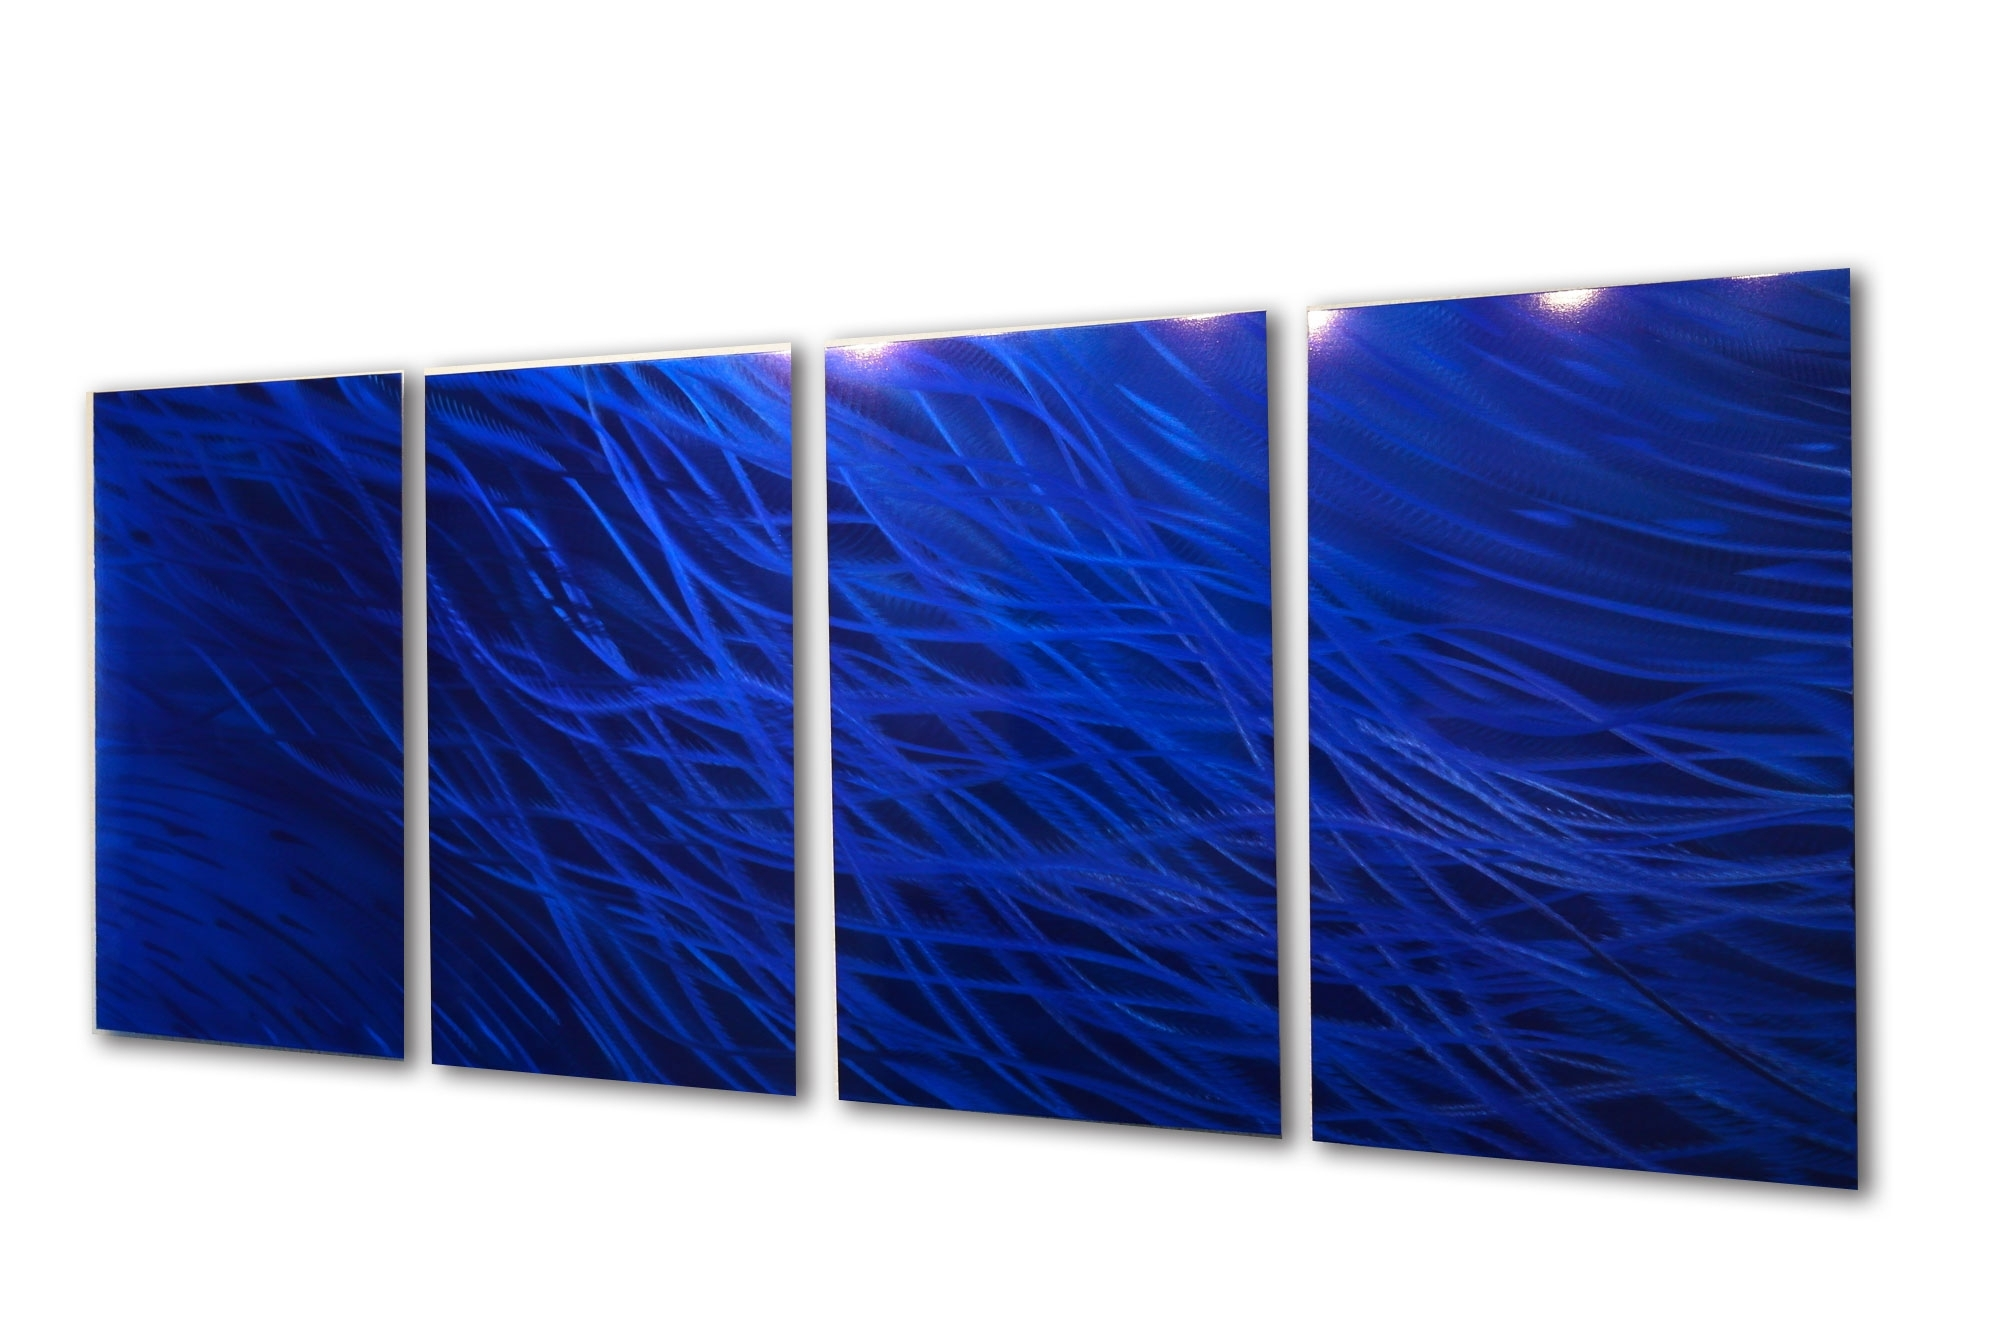 Well Known Dark Blue Wall Art Pertaining To Ocean Dark Blue – Metal Wall Art Abstract Sculpture Modern Decor (View 14 of 15)